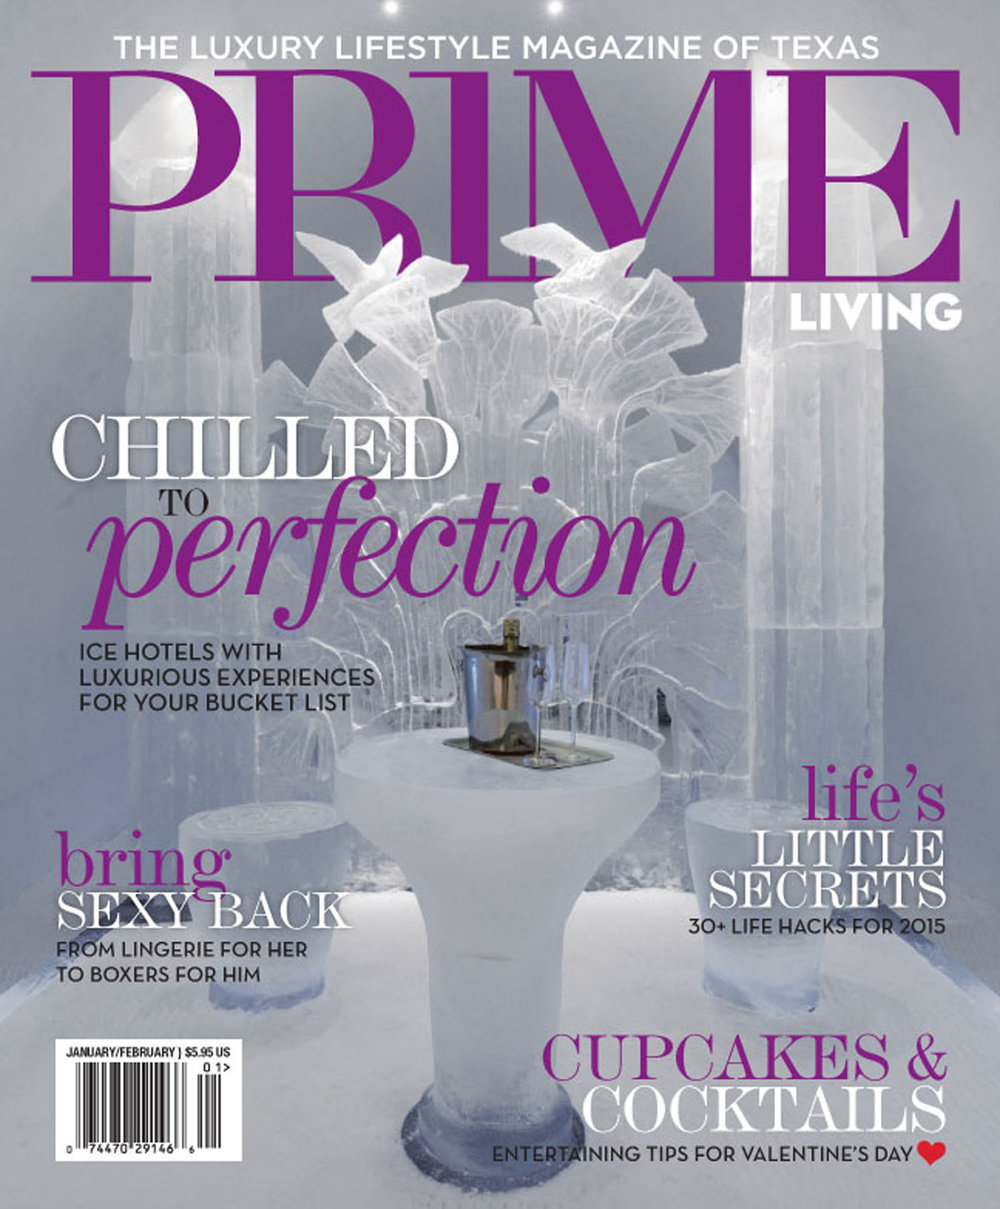 2015 JAN FEB PRIME LIVING COVER.jpg